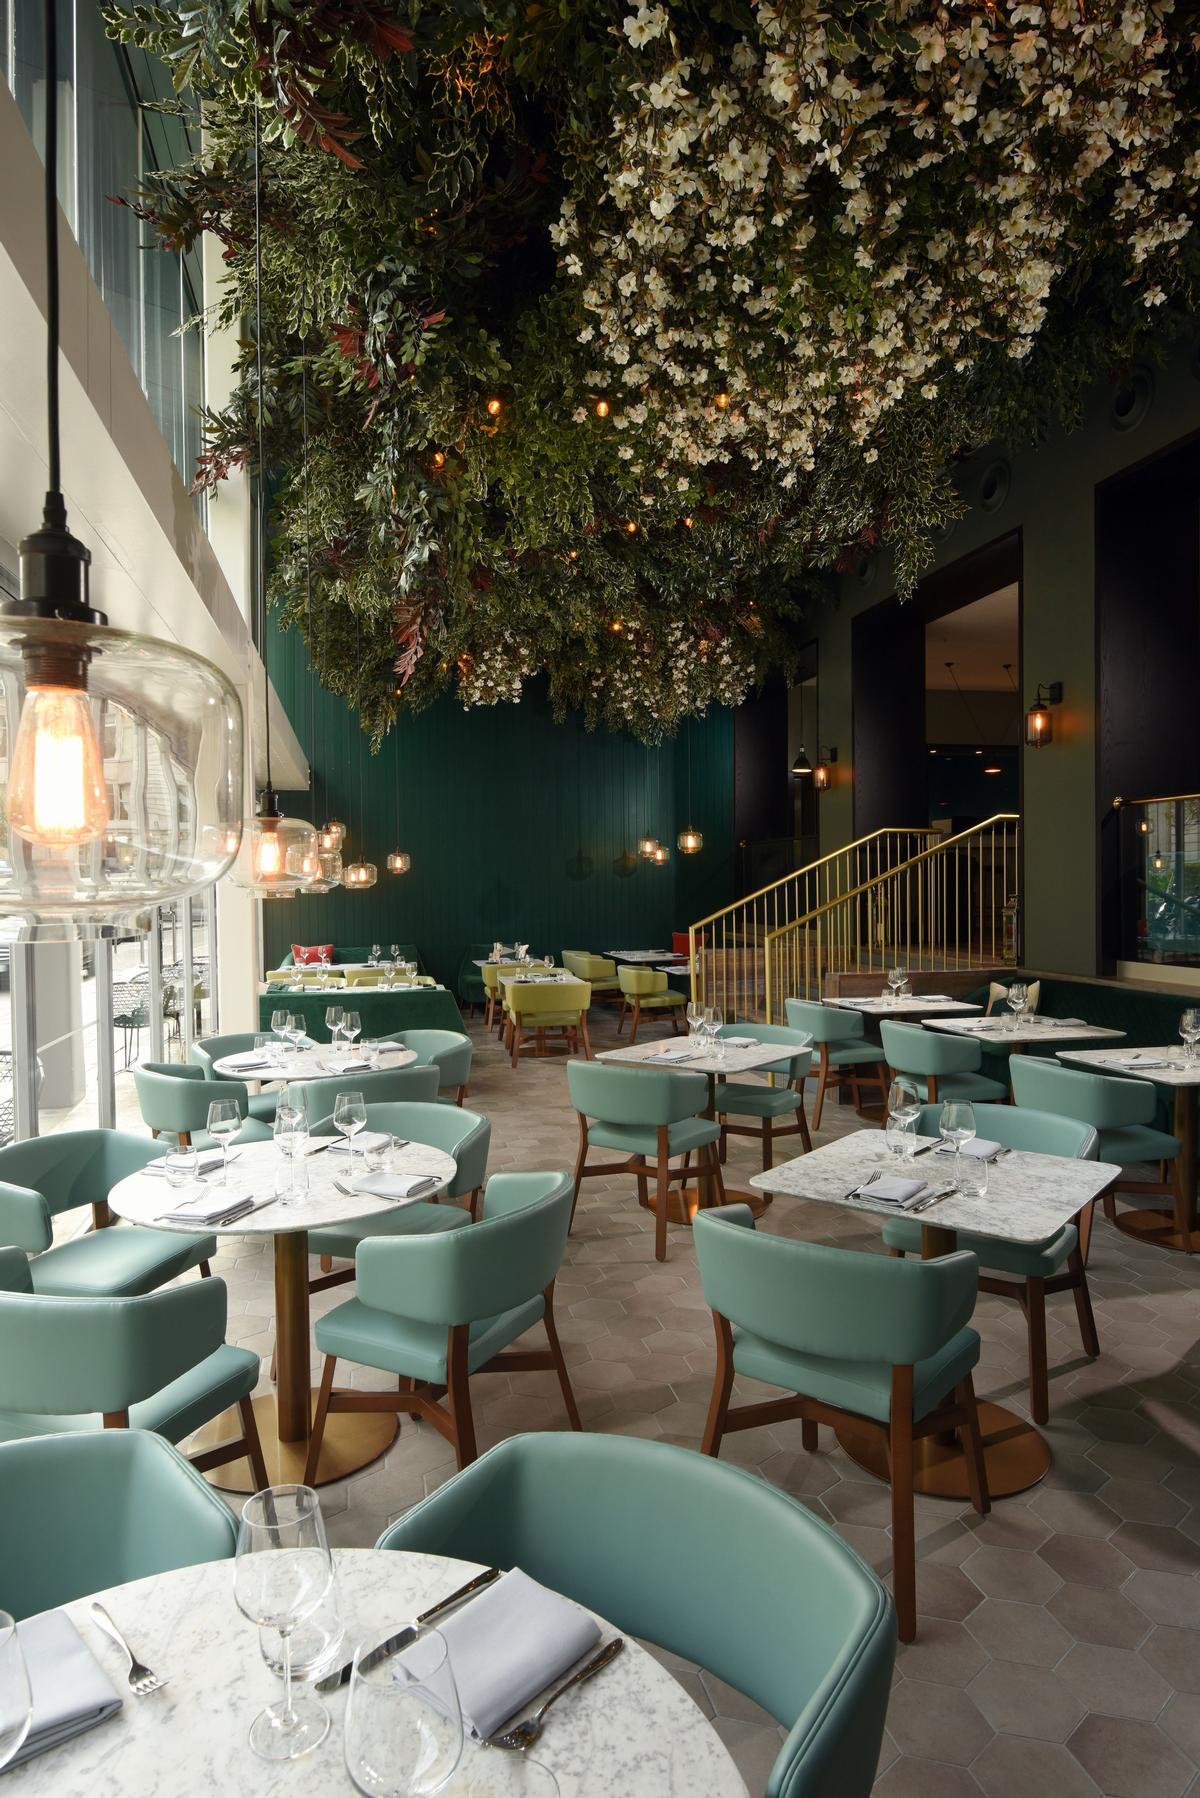 The Lampery restaurant features concepts by hospitality and events company Concerto / Apex City of London